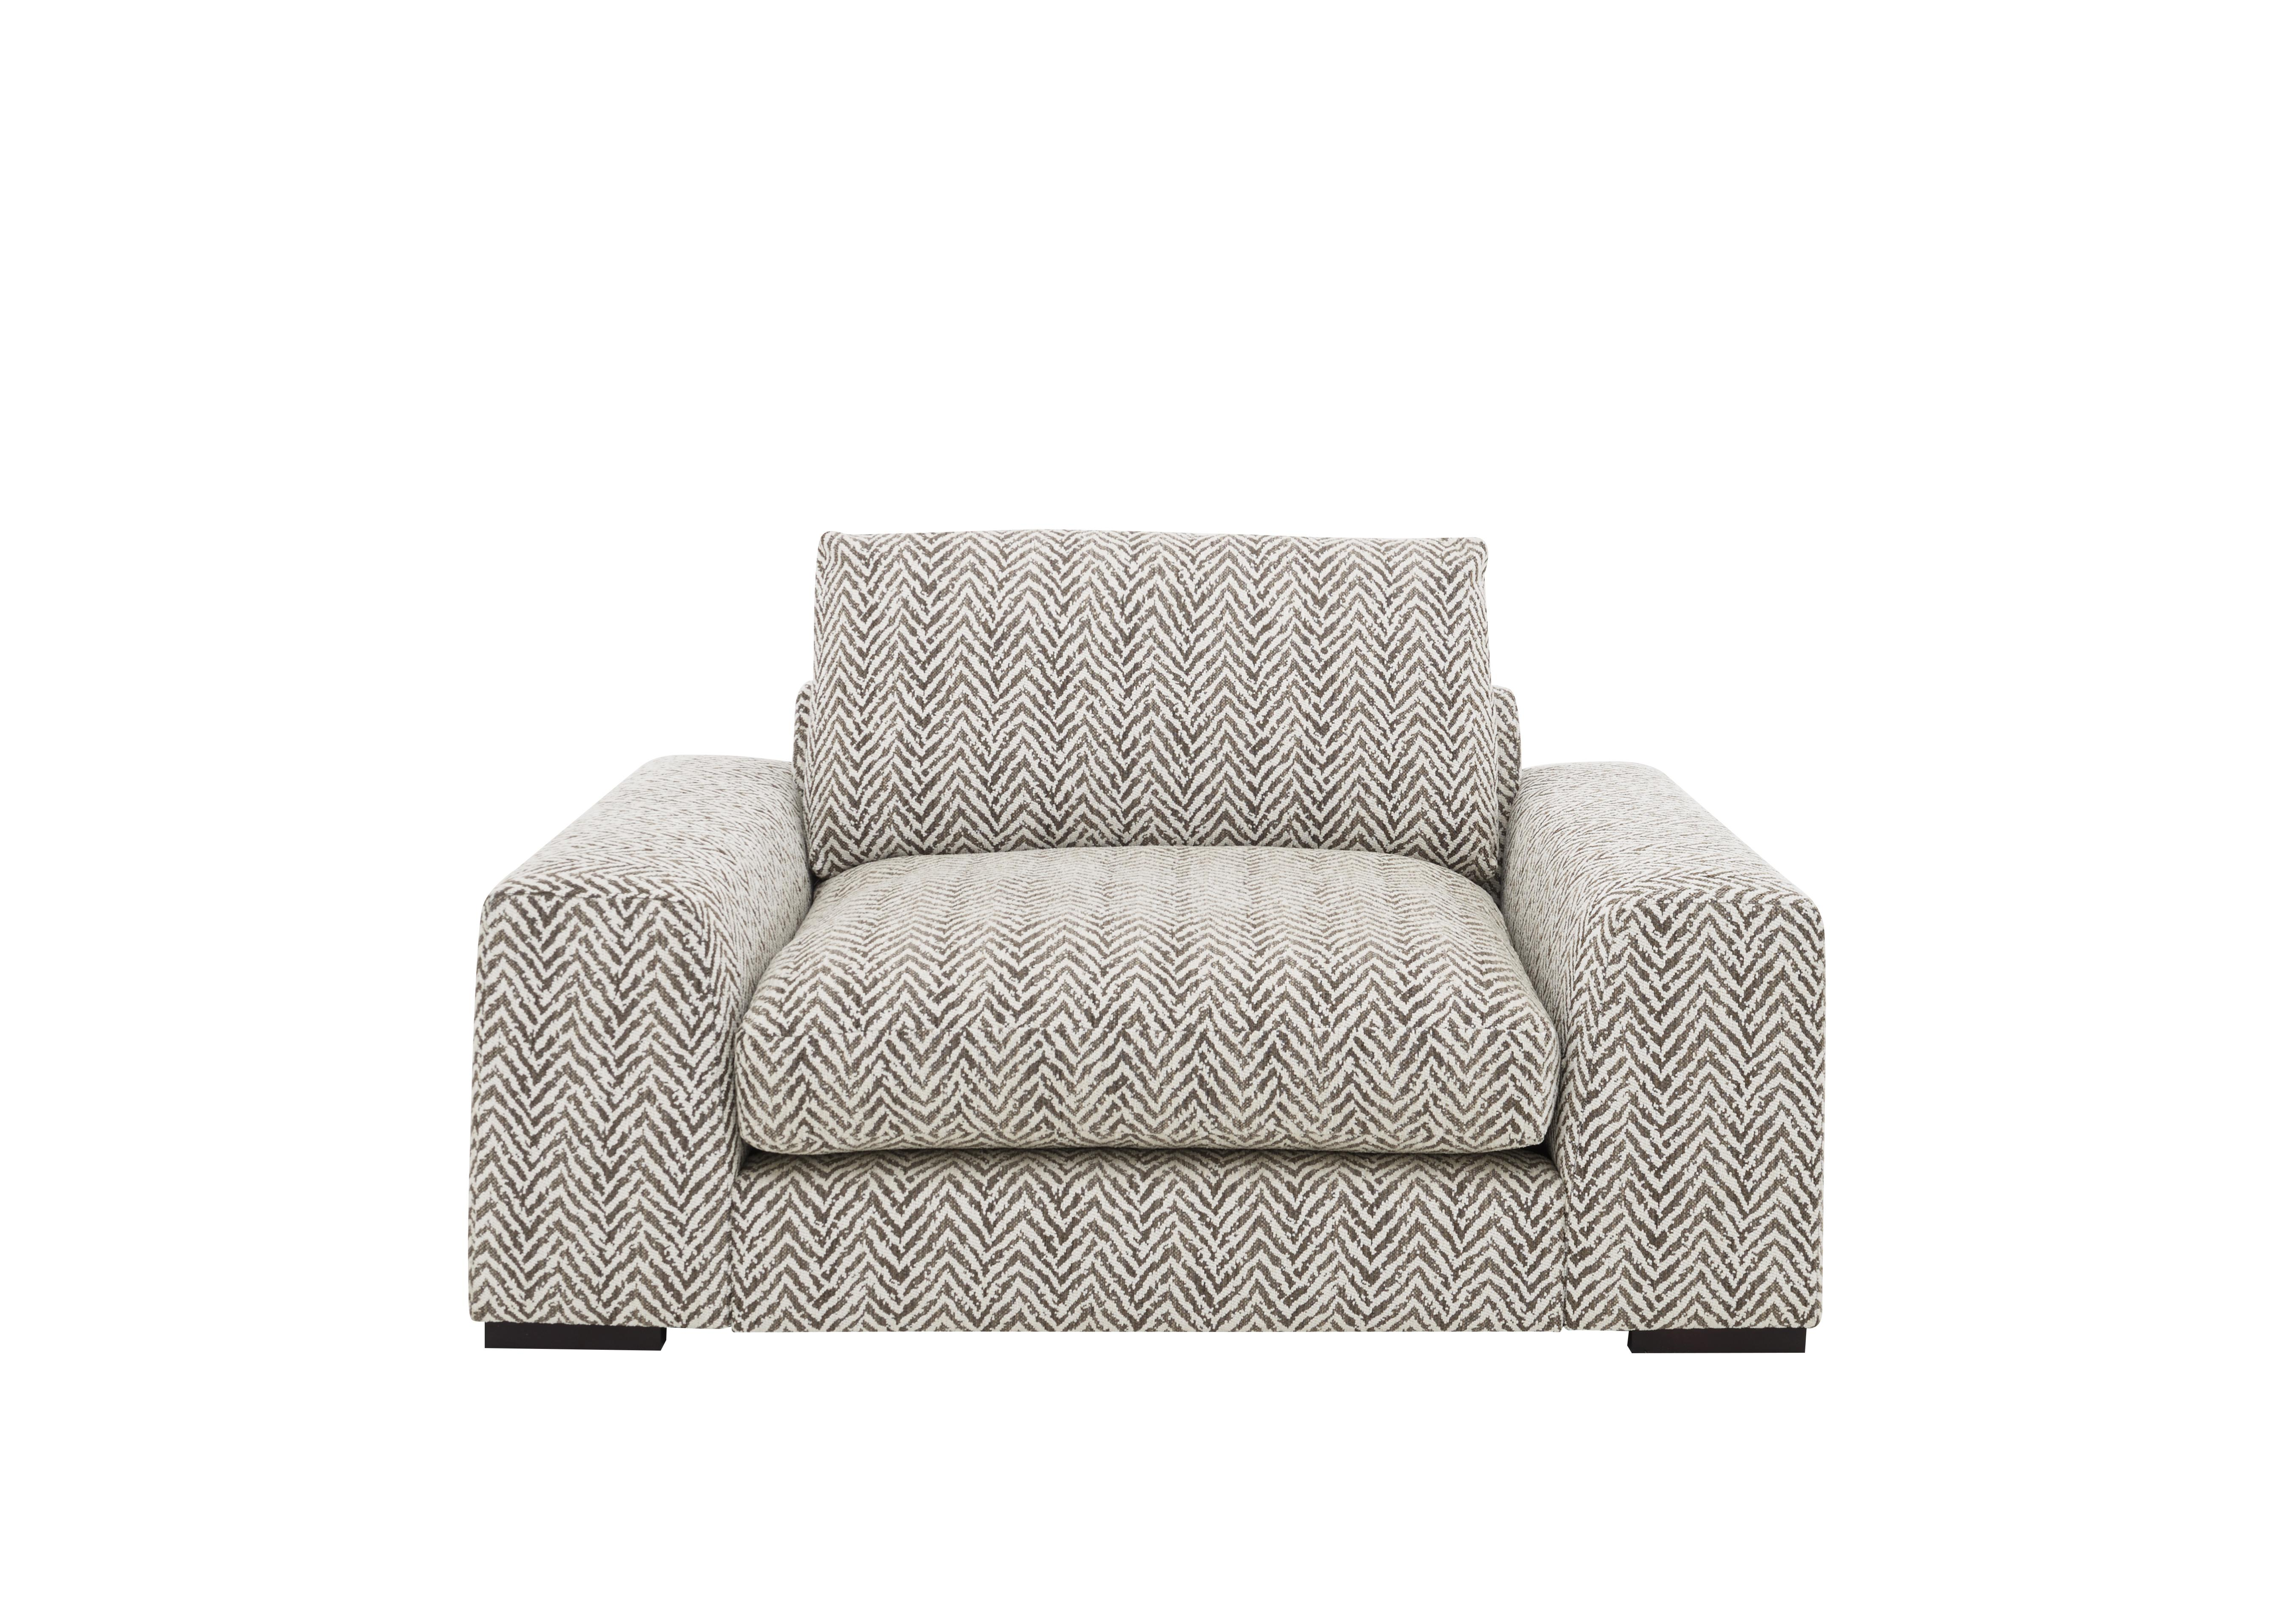 patterned sofas uk american made loveseats fabric armchairs striped furniture village limited stock available